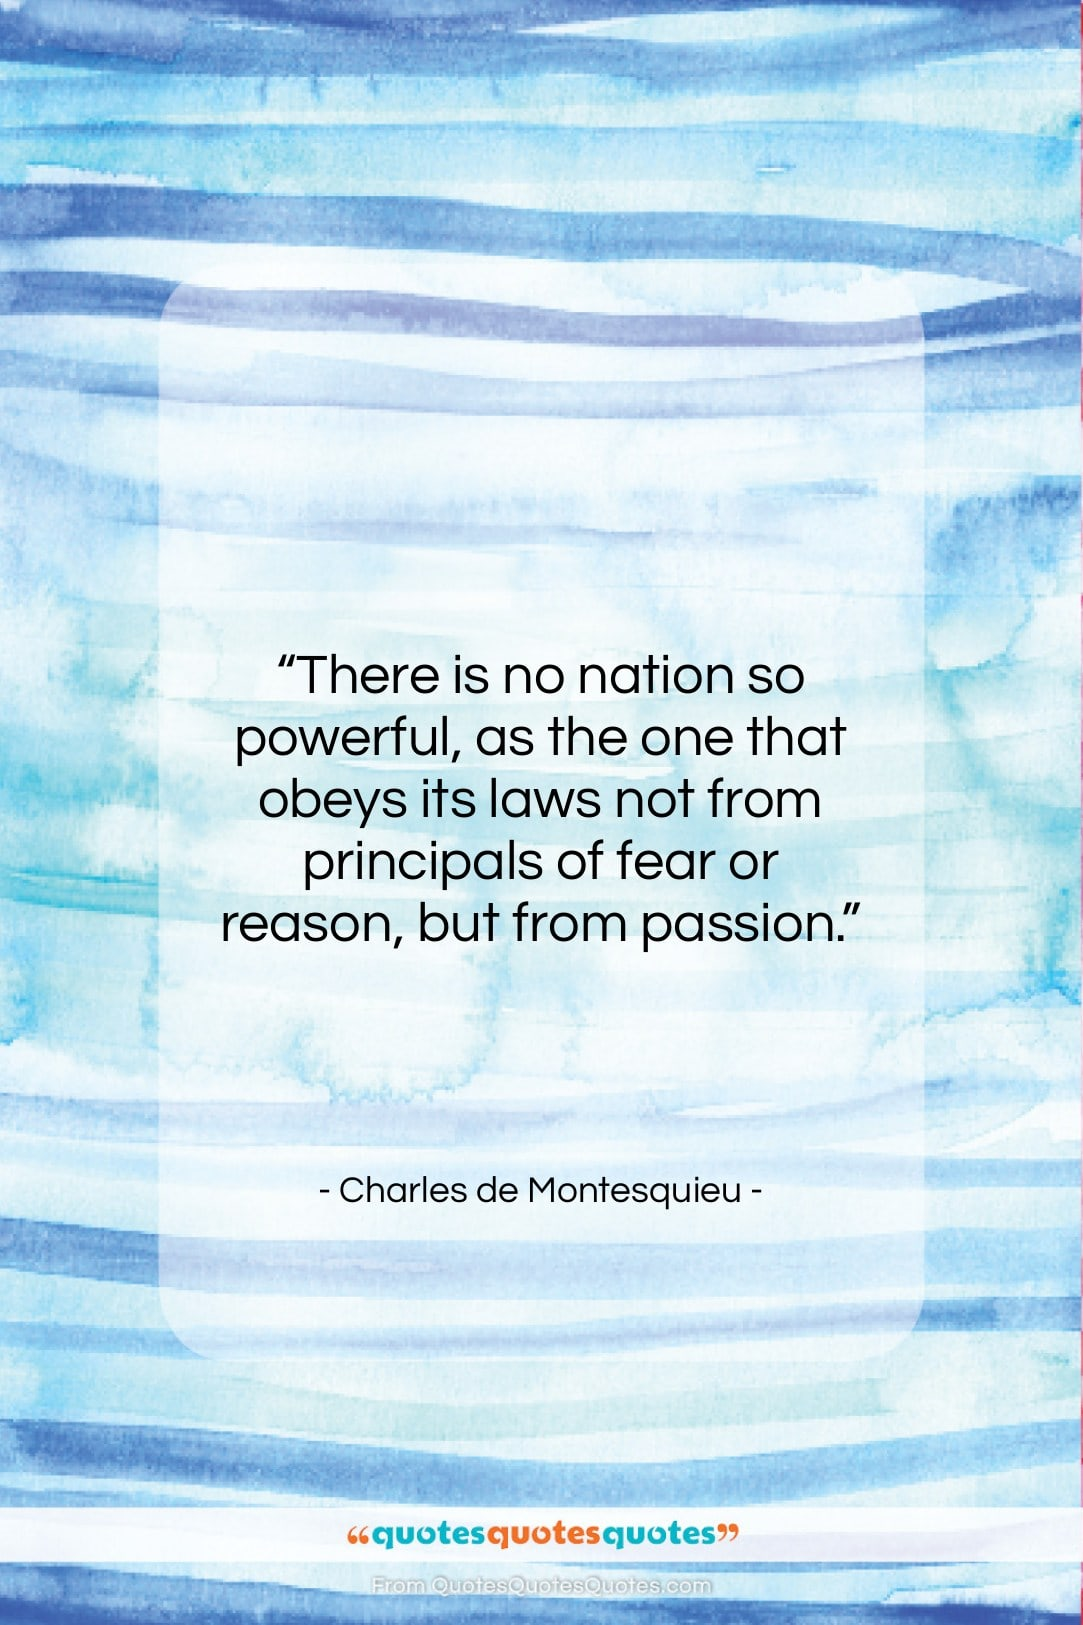 """Charles de Montesquieu quote: """"There is no nation so powerful, as…""""- at QuotesQuotesQuotes.com"""